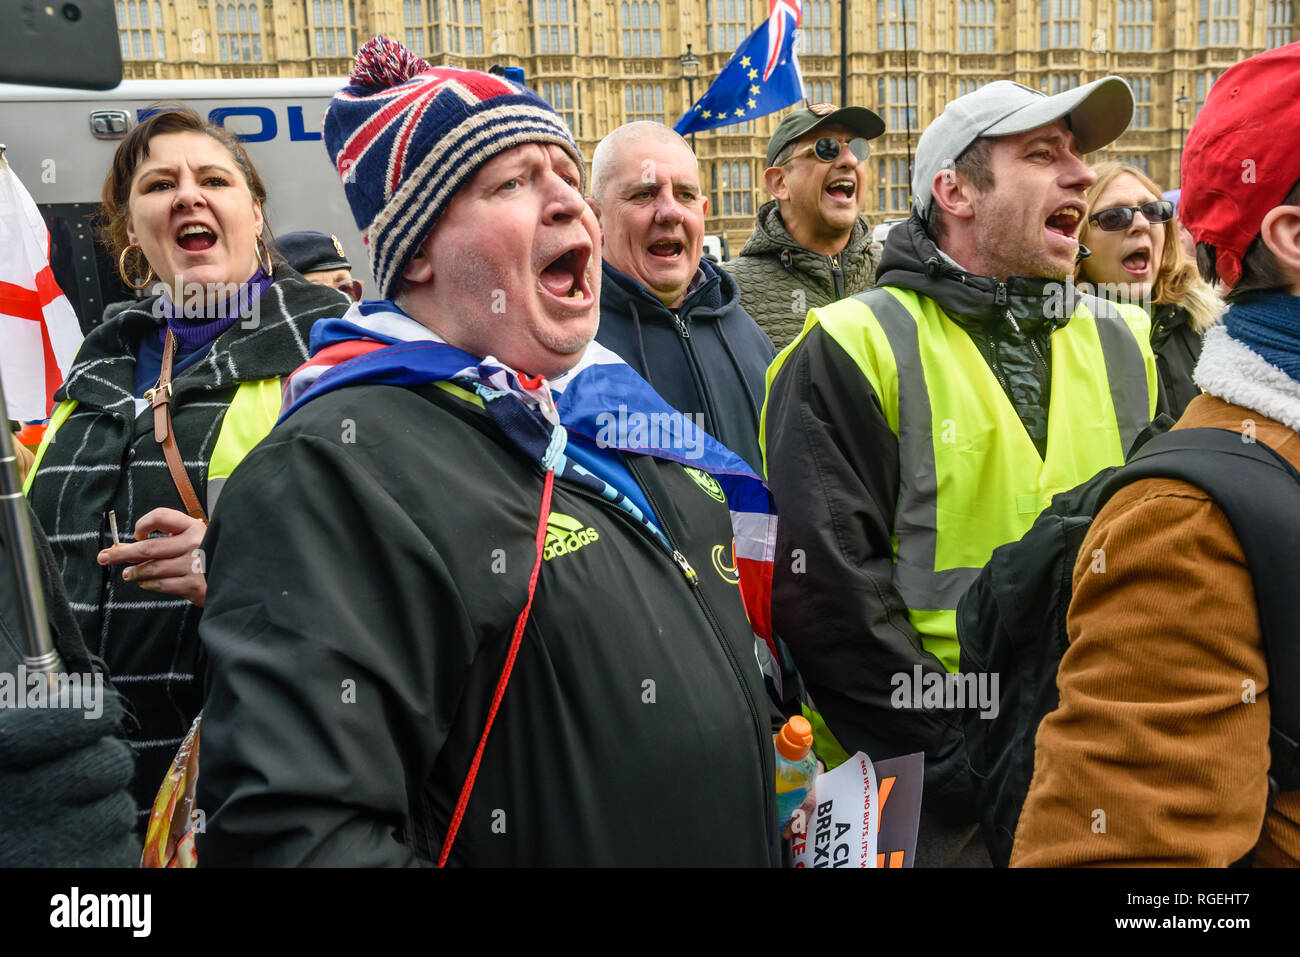 London, UK. 29th January 2019. Brexiteers shout together at EU Supergirl Madeleina Kay who is singing. On the day of more Brexit votes, protests around parliament continue, with Remainers waving EU flags, and Brexiteers holding signs leave means leave. A small group, some wearing yellow jackets came to shout at the Remainers, calling them traitors. Away from this there were a few more reasoned arguments, and others making their points with various costumes. Credit: Peter Marshall/Alamy Live News - Stock Image